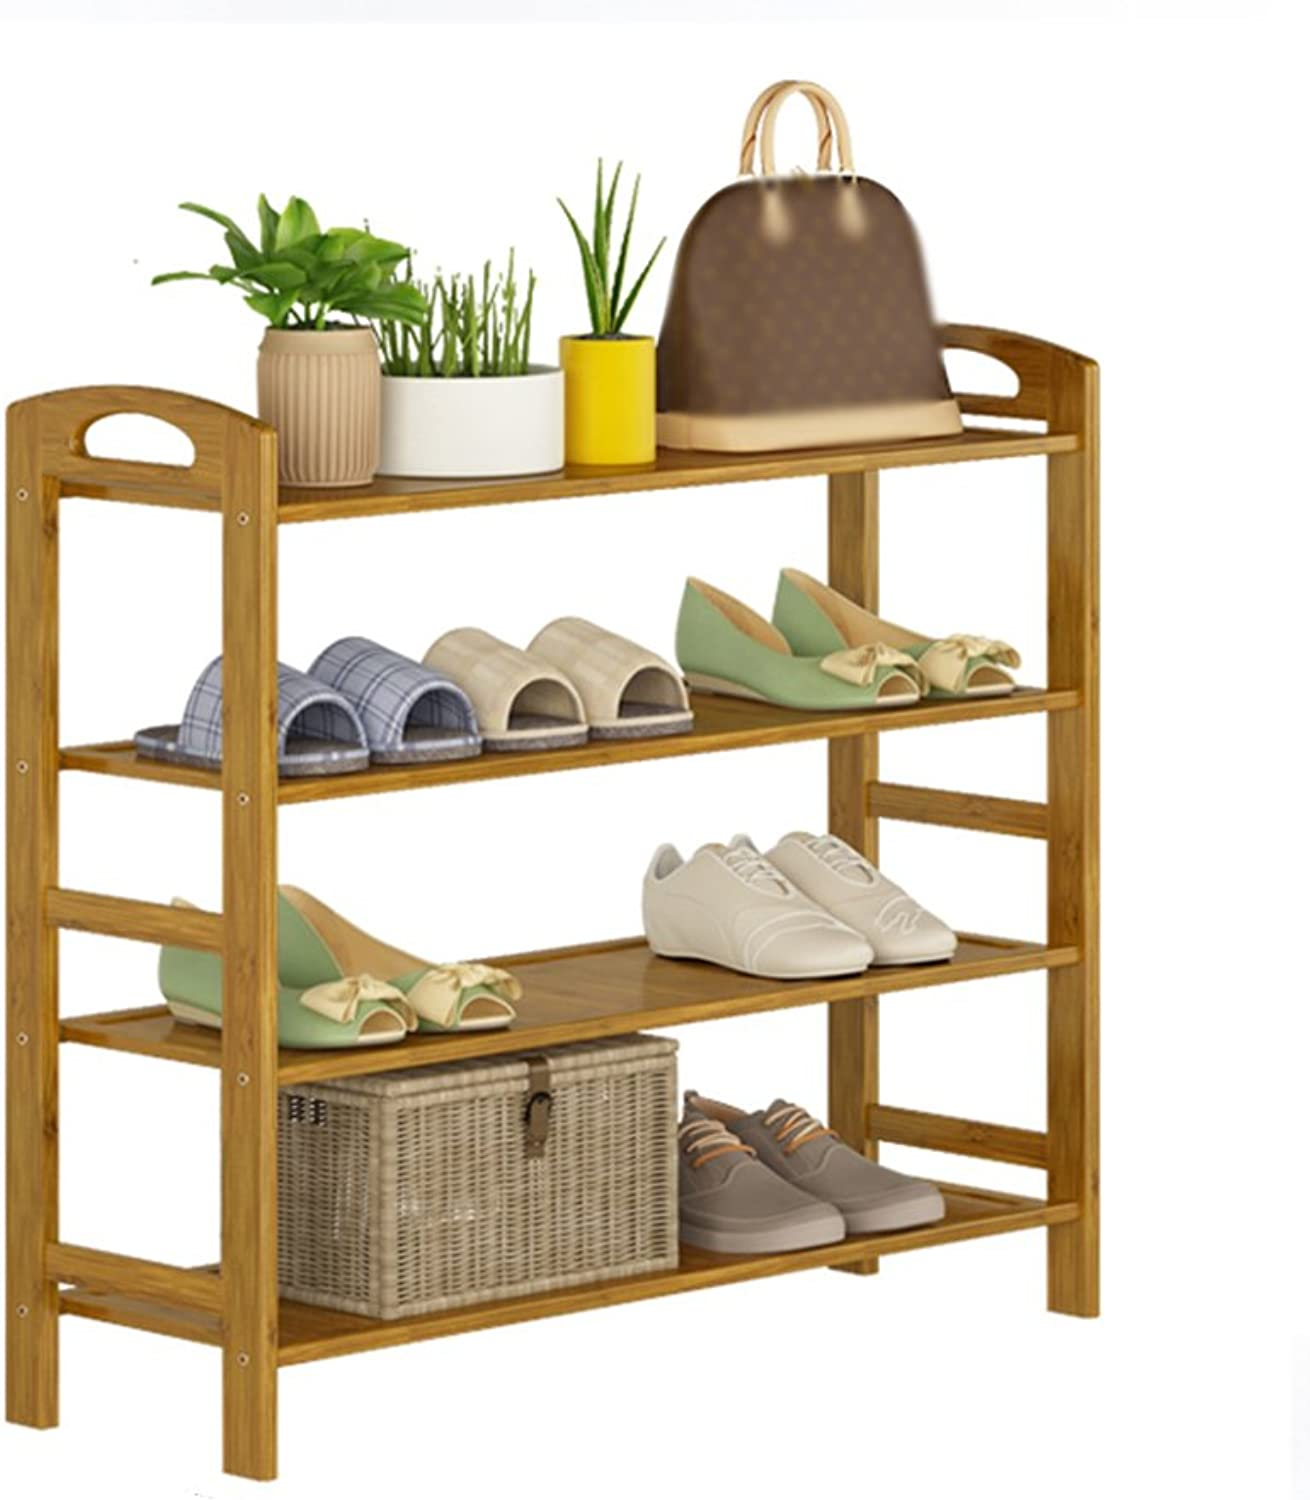 ZHIRONG shoes Rack, Bamboo shoes Rack Organiser-4 Tier-16 Pairs Of shoes-Multifunctional Storage Shelf-Good For Hallway Living Room Bedroom-502668CM   602668CM   702668CM   802668CM   902668CM